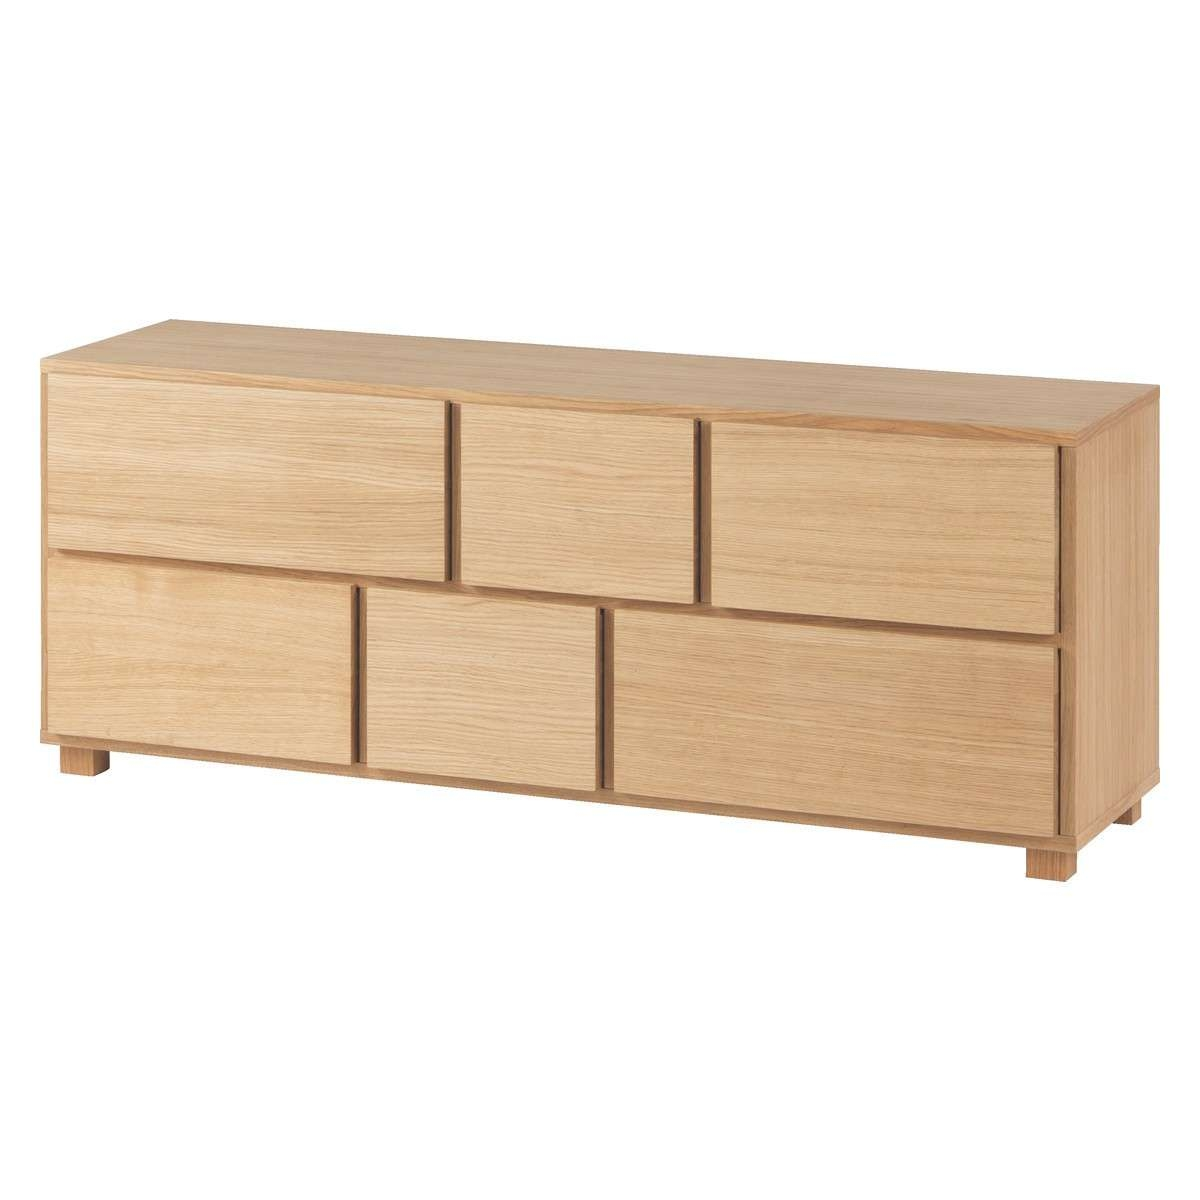 Hana Ii Oiled Oak 6 Drawer Low Wide Chest | Buy Now At Habitat Uk With Low Wide Sideboards (View 4 of 20)